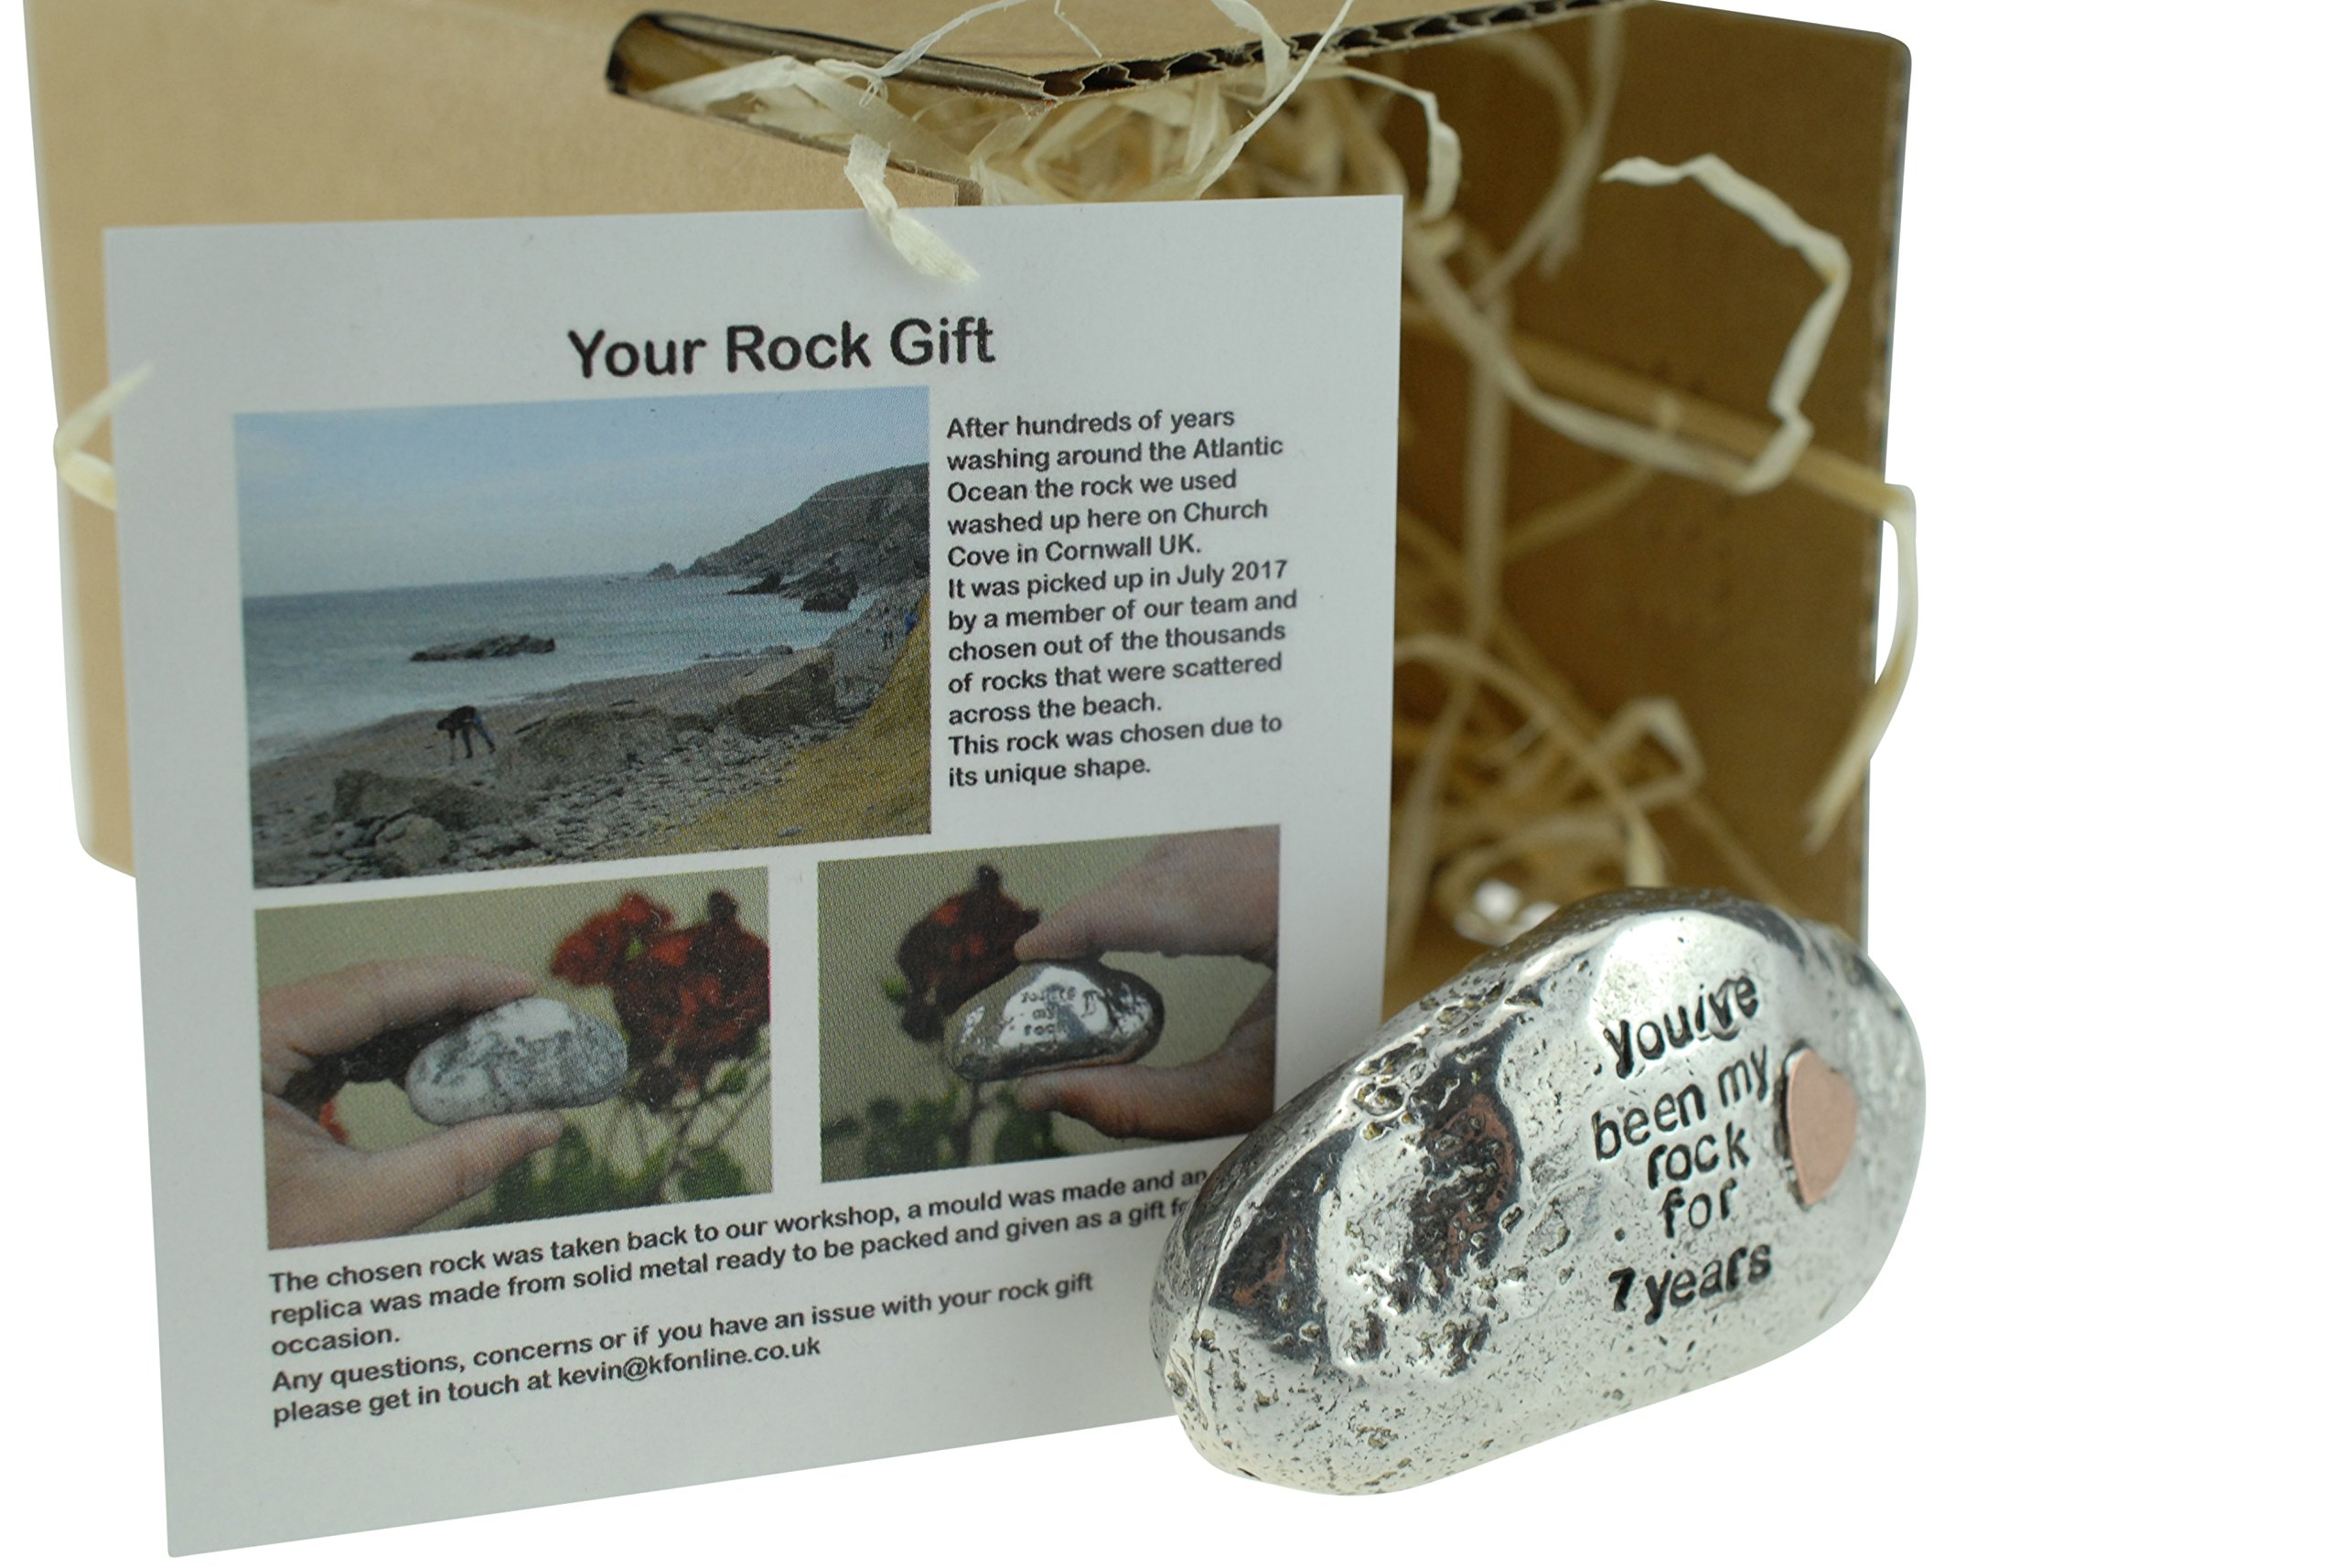 Pirantin You've Been My Rock For 7 Years - Solid 7th Anniversary Metal Rock With Copper Heart Inset - Heavy Rock Gift